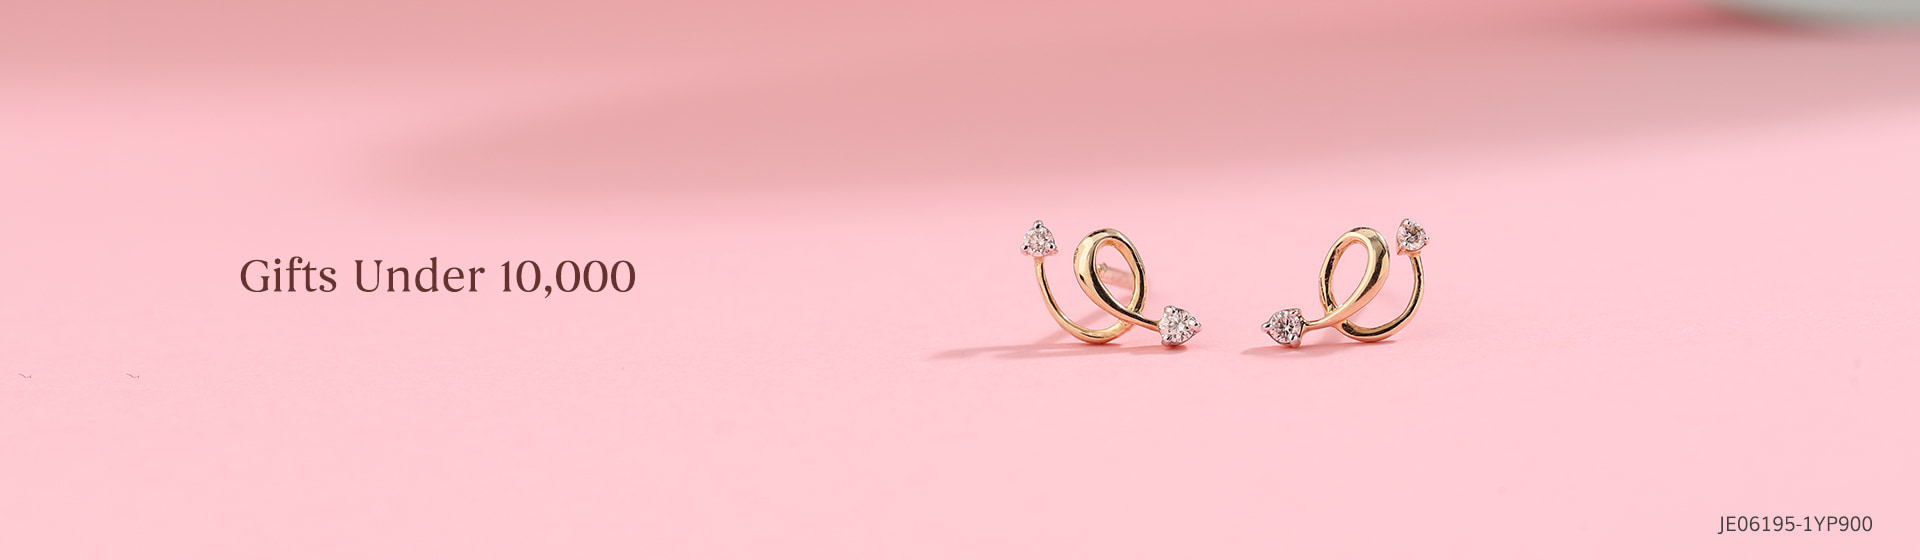 Buy Unique Gold and Diamond Jewellery Gifts Under 10,000